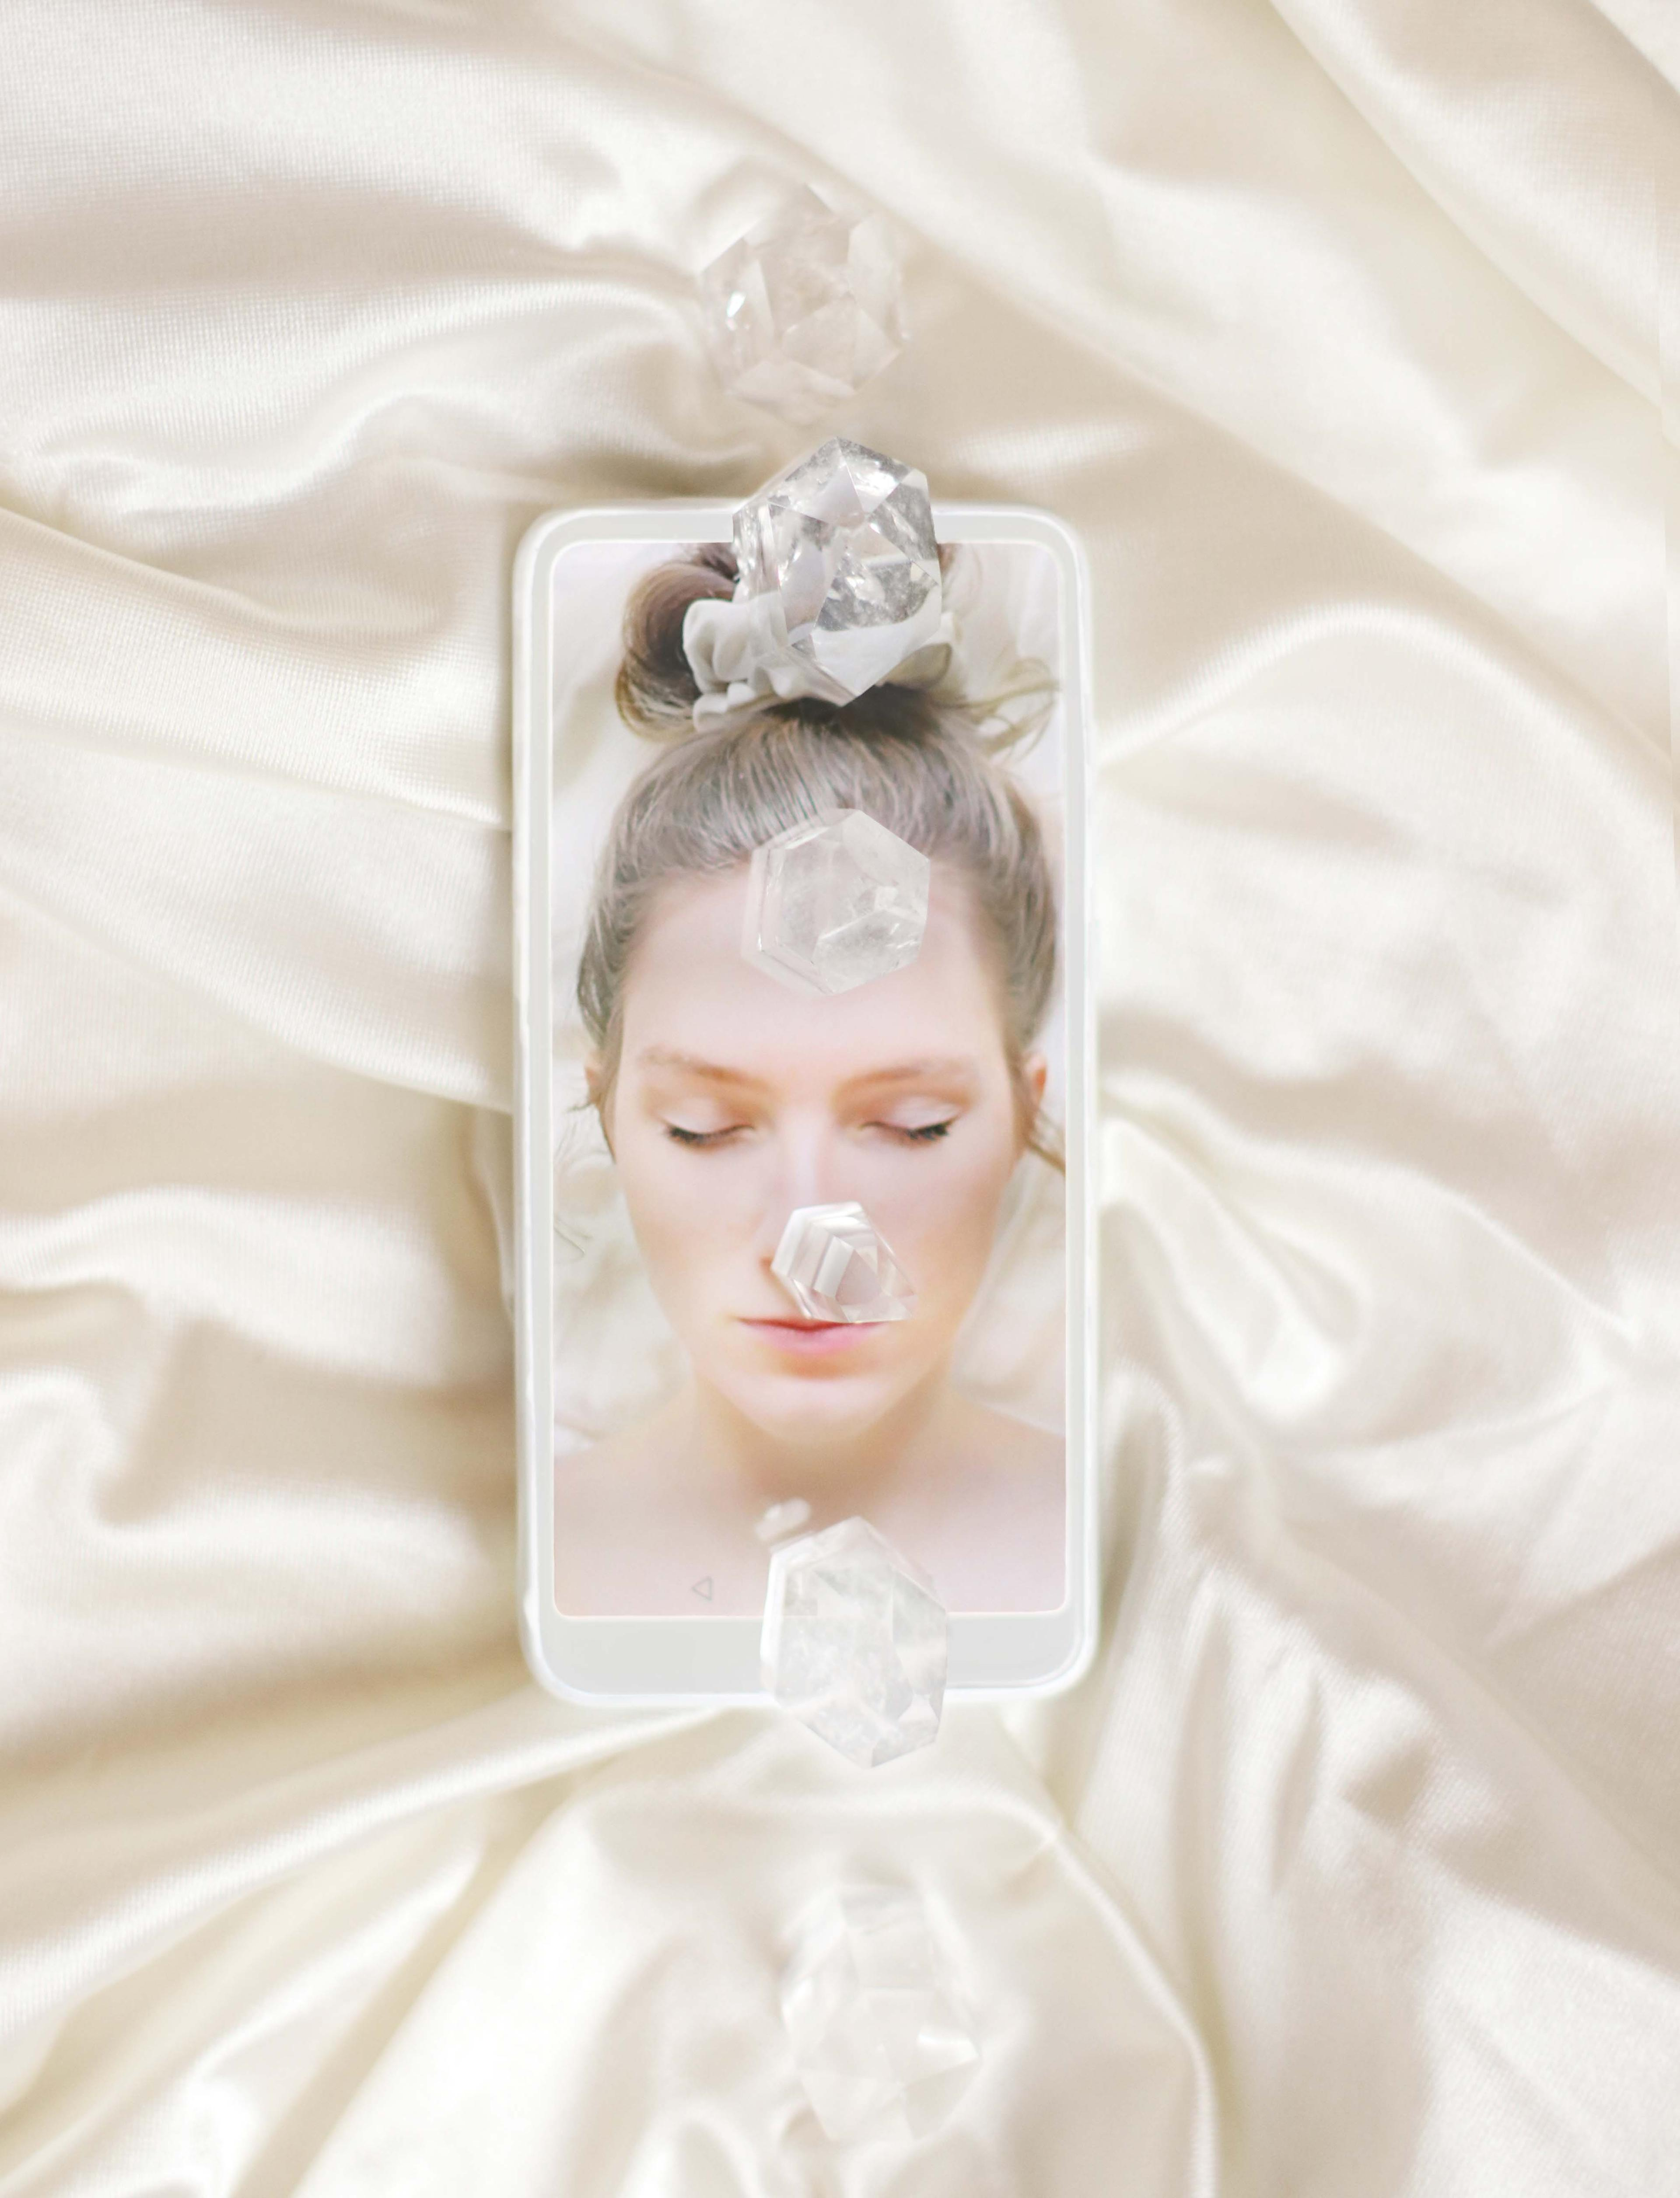 artwork Selfportrait with rock crystals by Franziska Ostermann